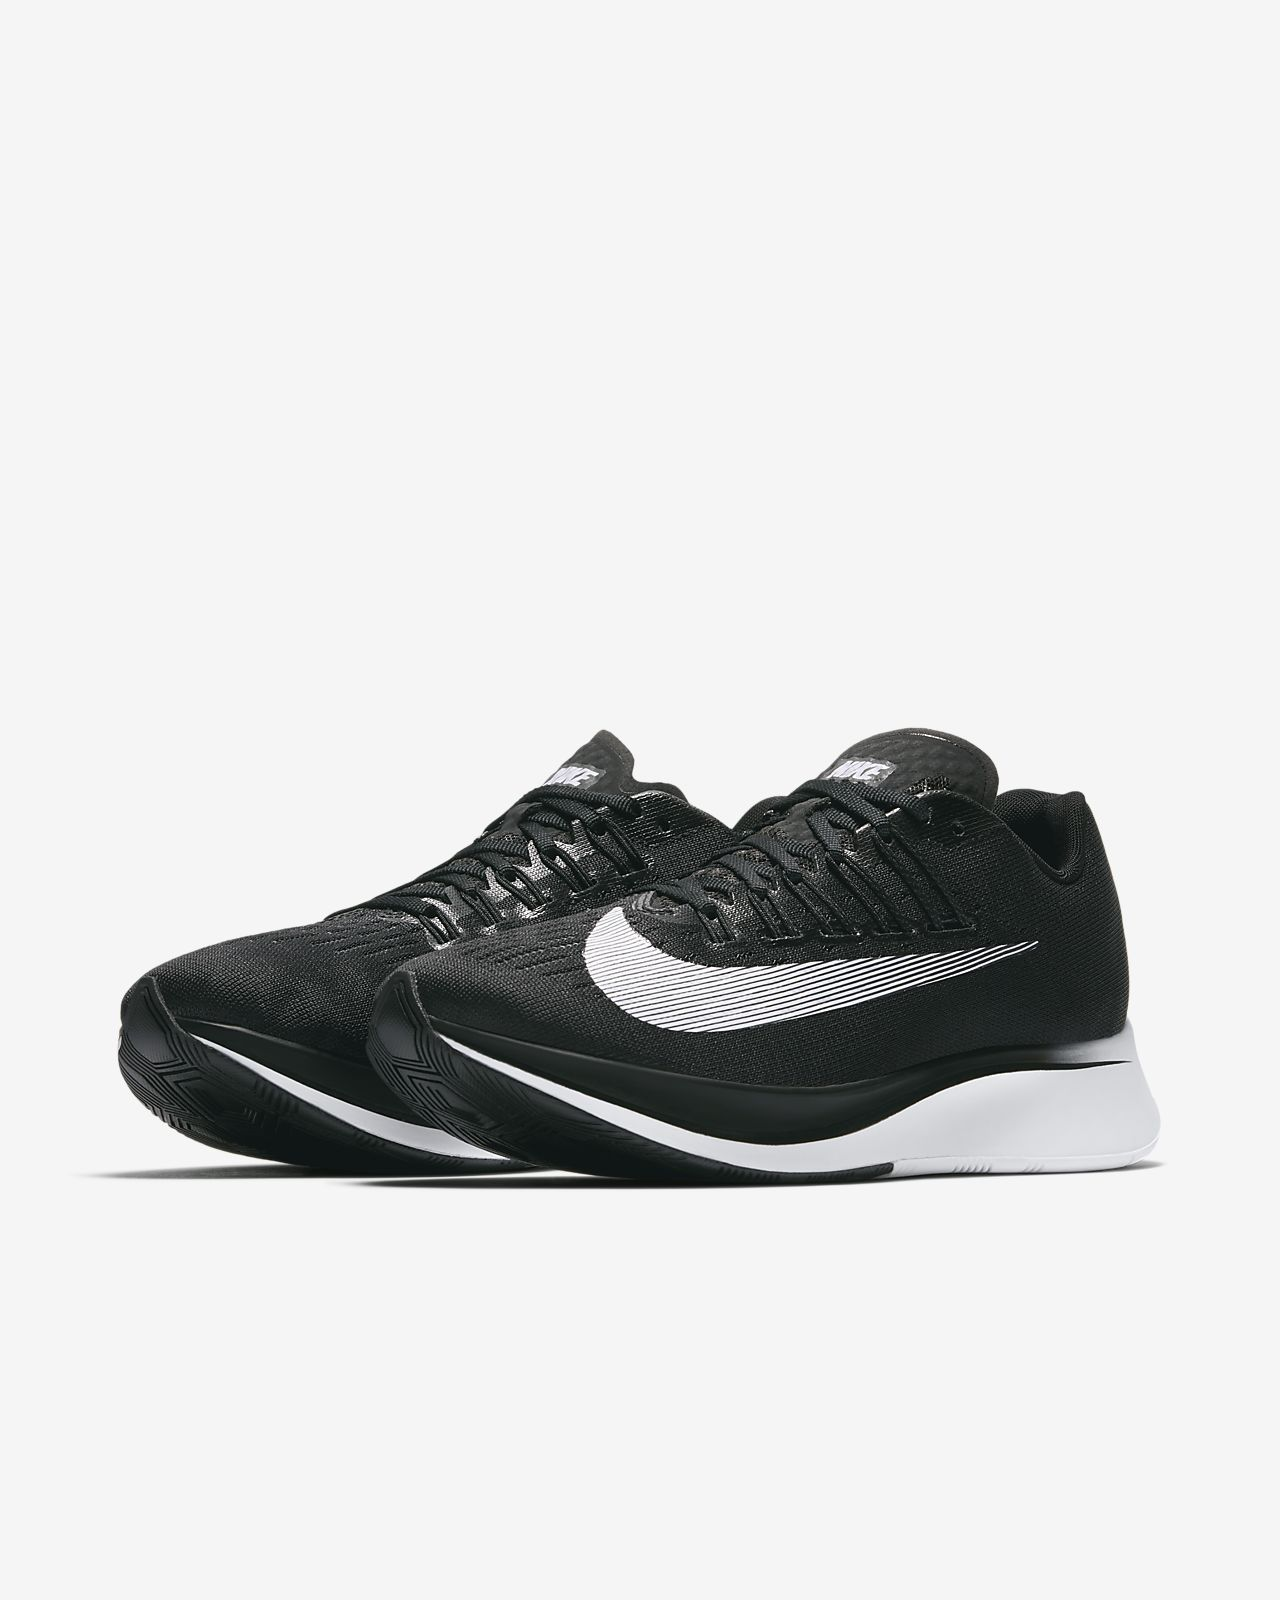 promo code d7499 8ef3a Nike Zoom Fly Women s Running Shoe